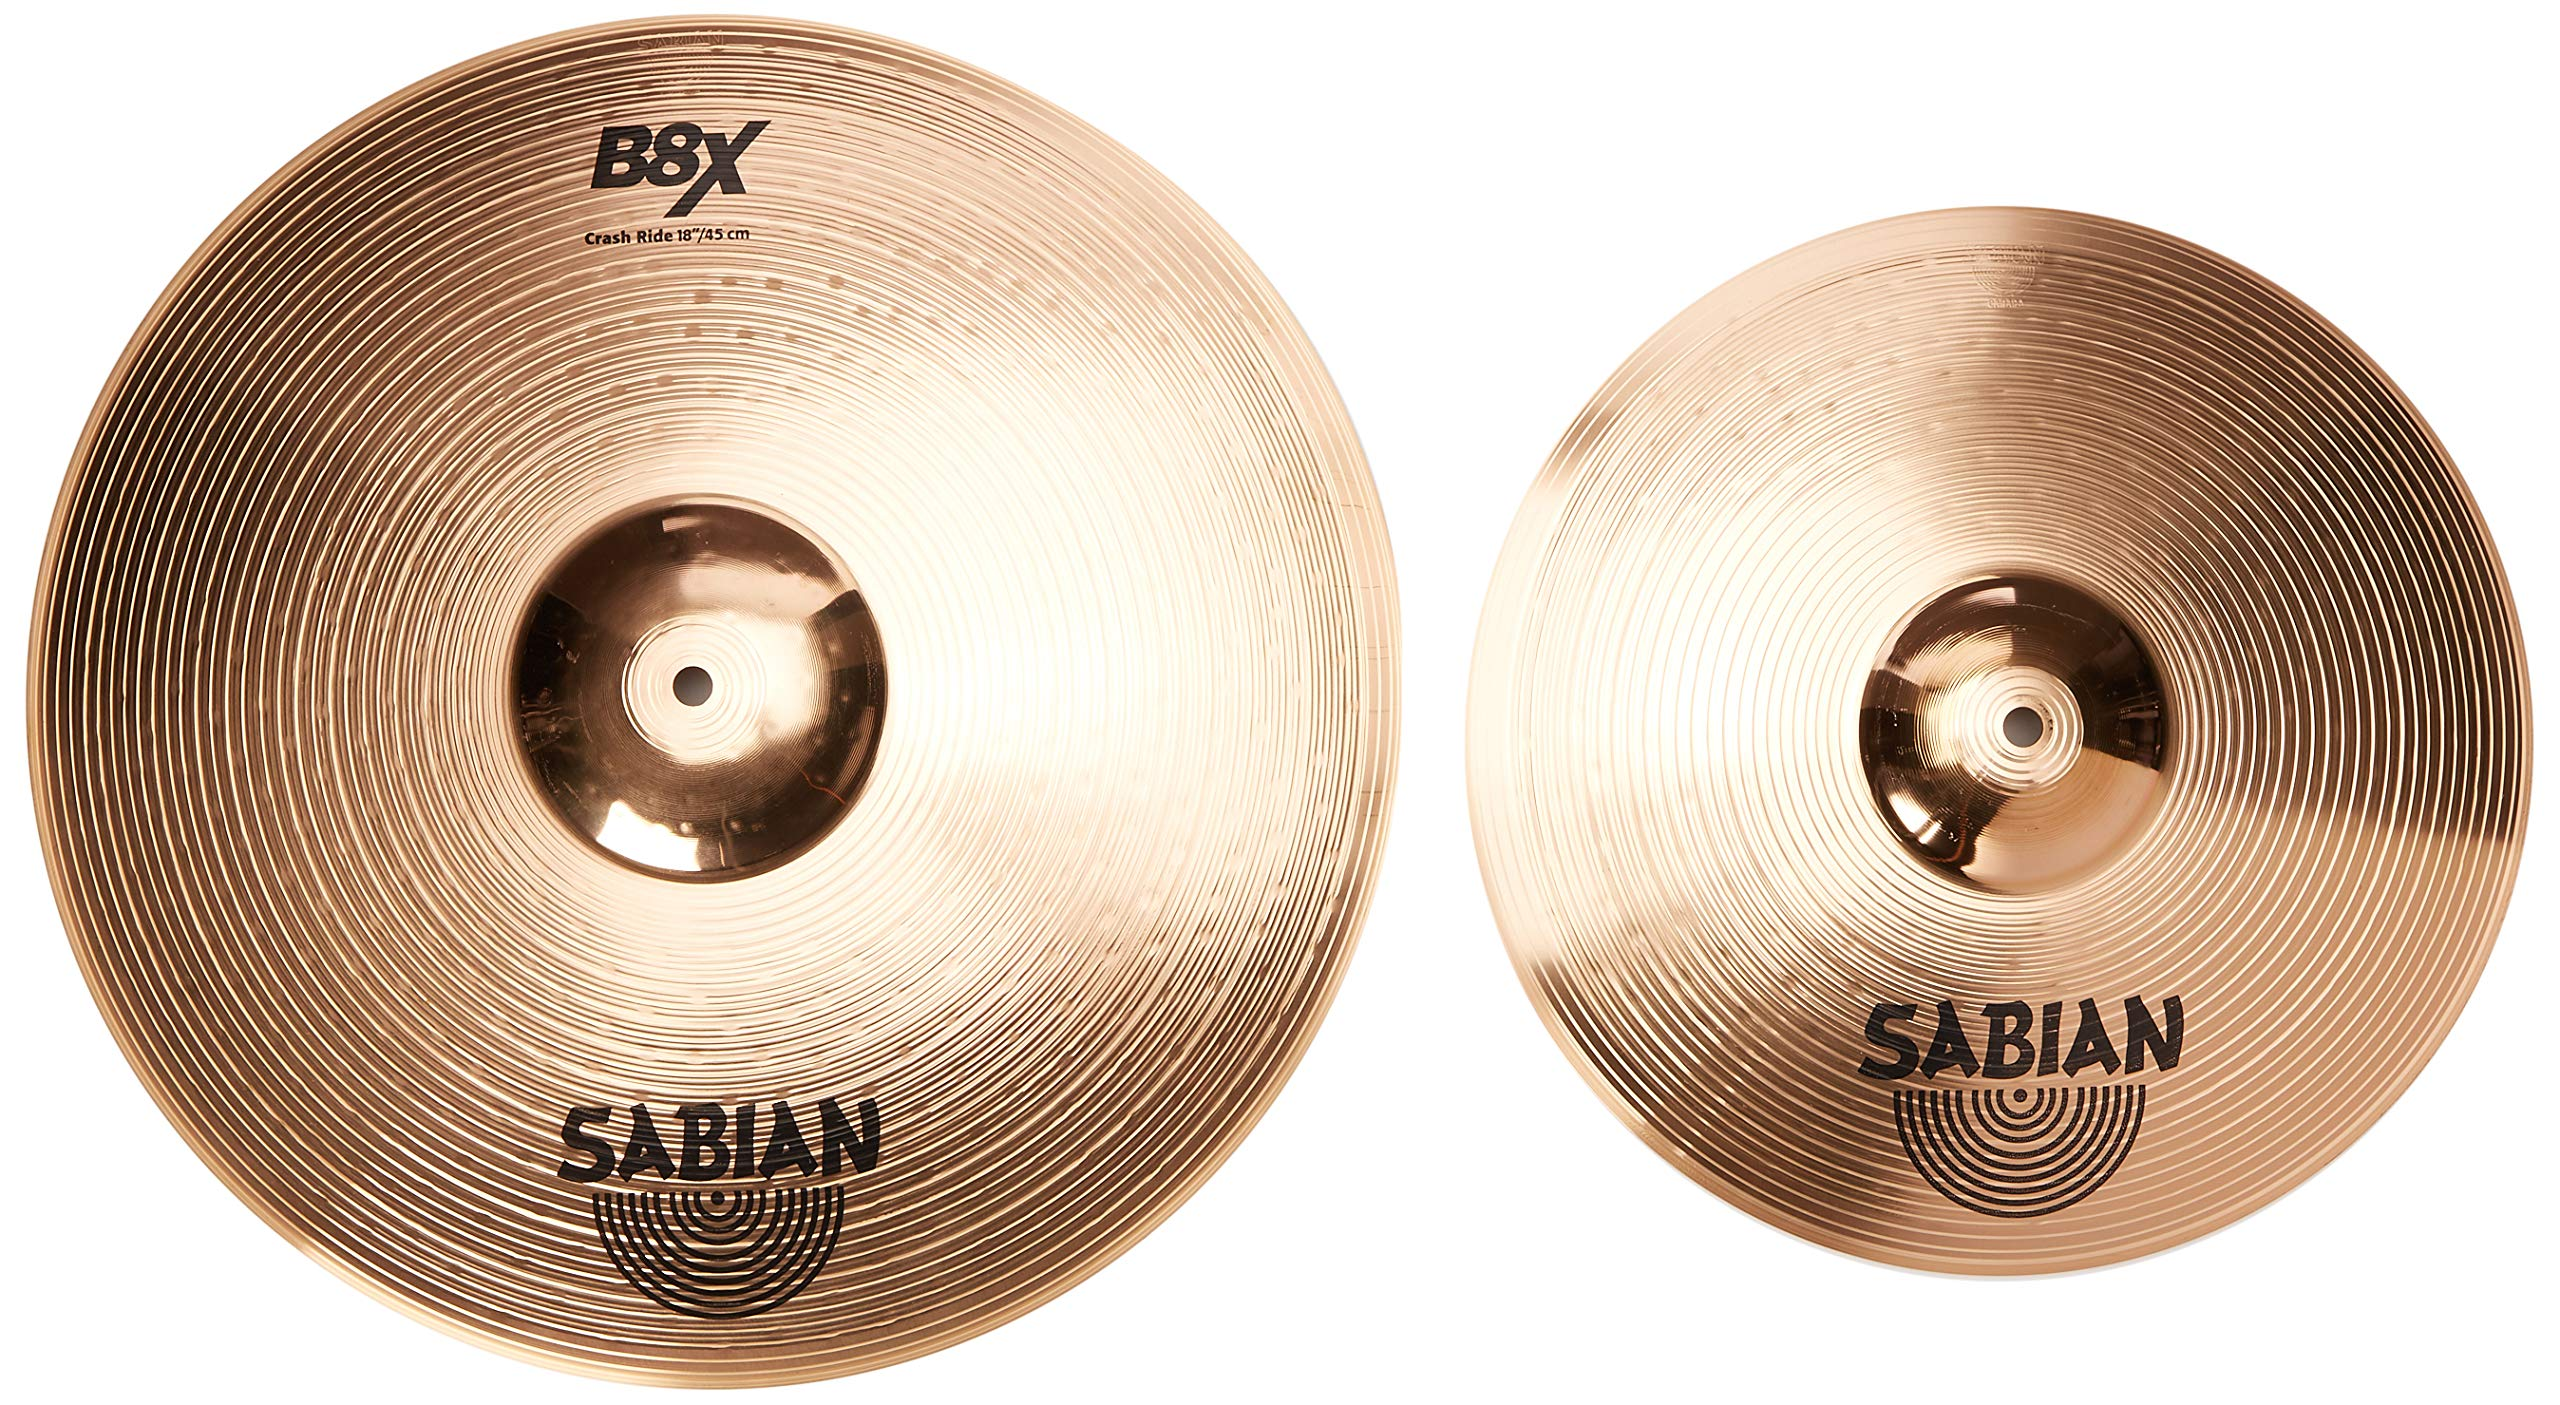 Sabian Cymbal Variety Package, inch (45002X) by Sabian